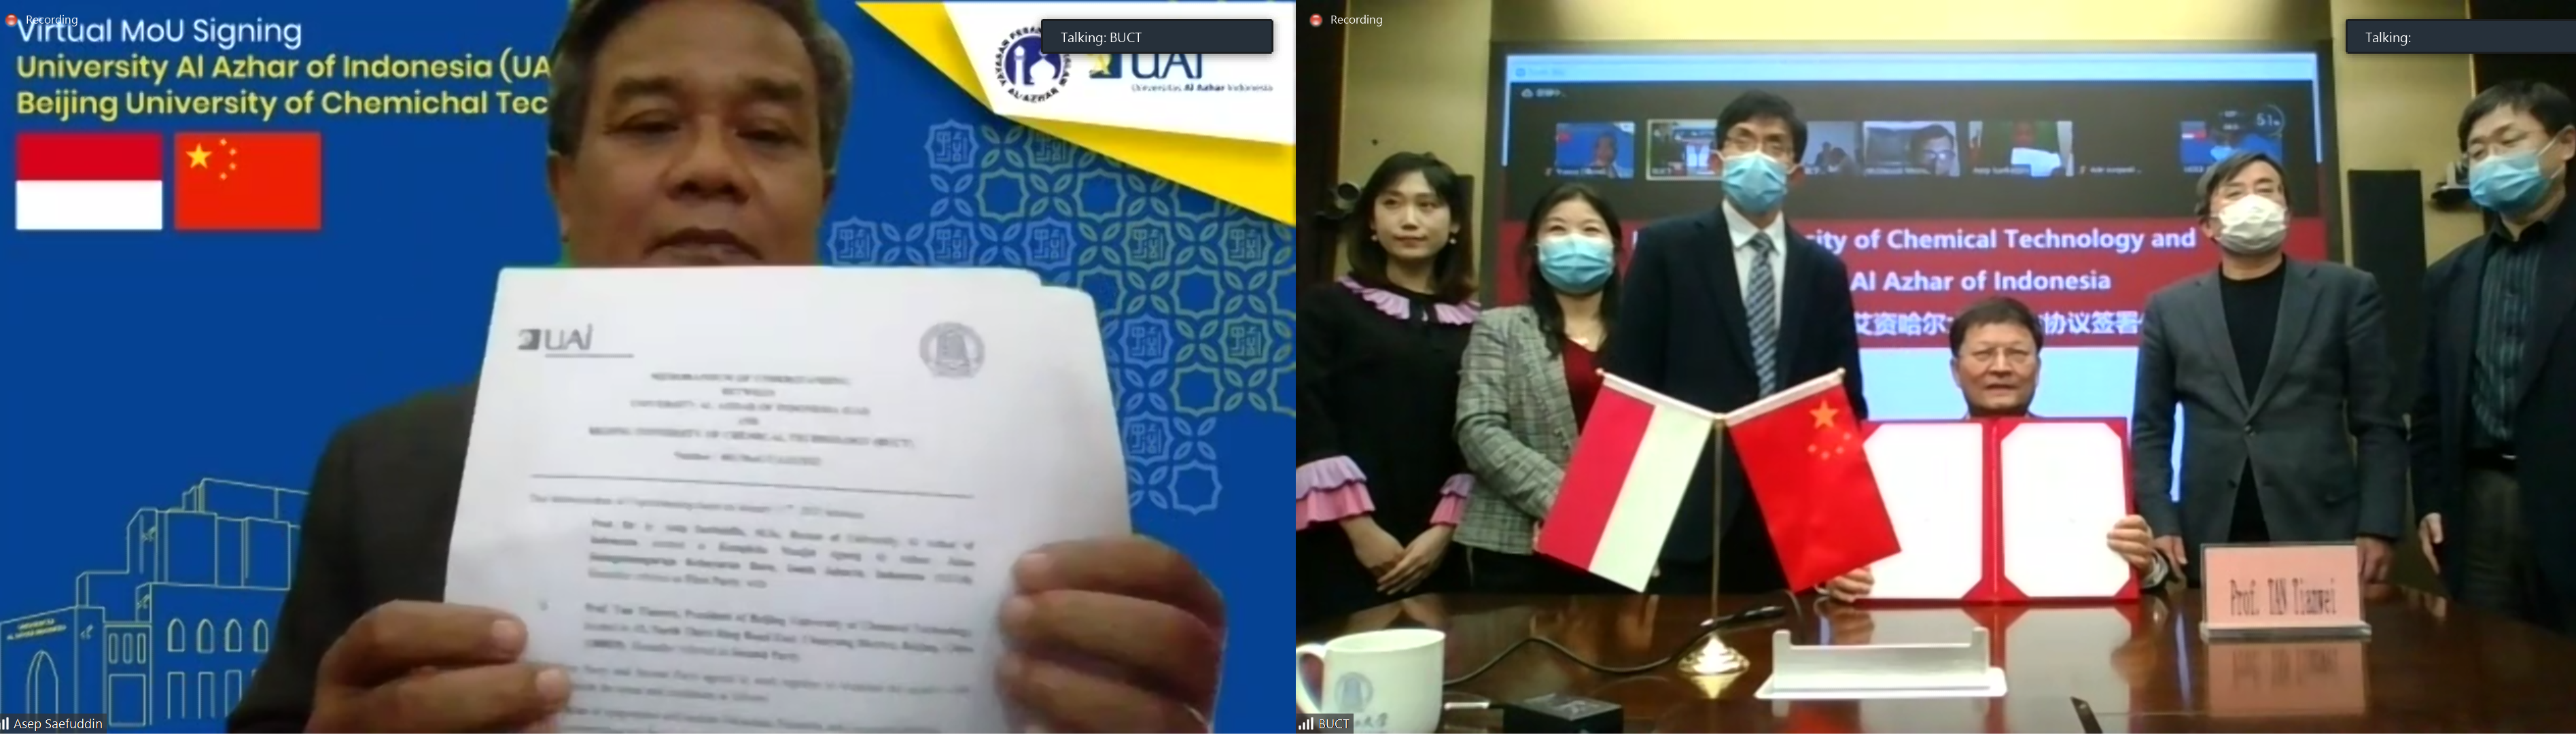 From Beijing With Love : University Al Azhar Of Indonesia And Beijing University Of Chemichal Technology Established Official Cooperation Via Virtual MoU Signing